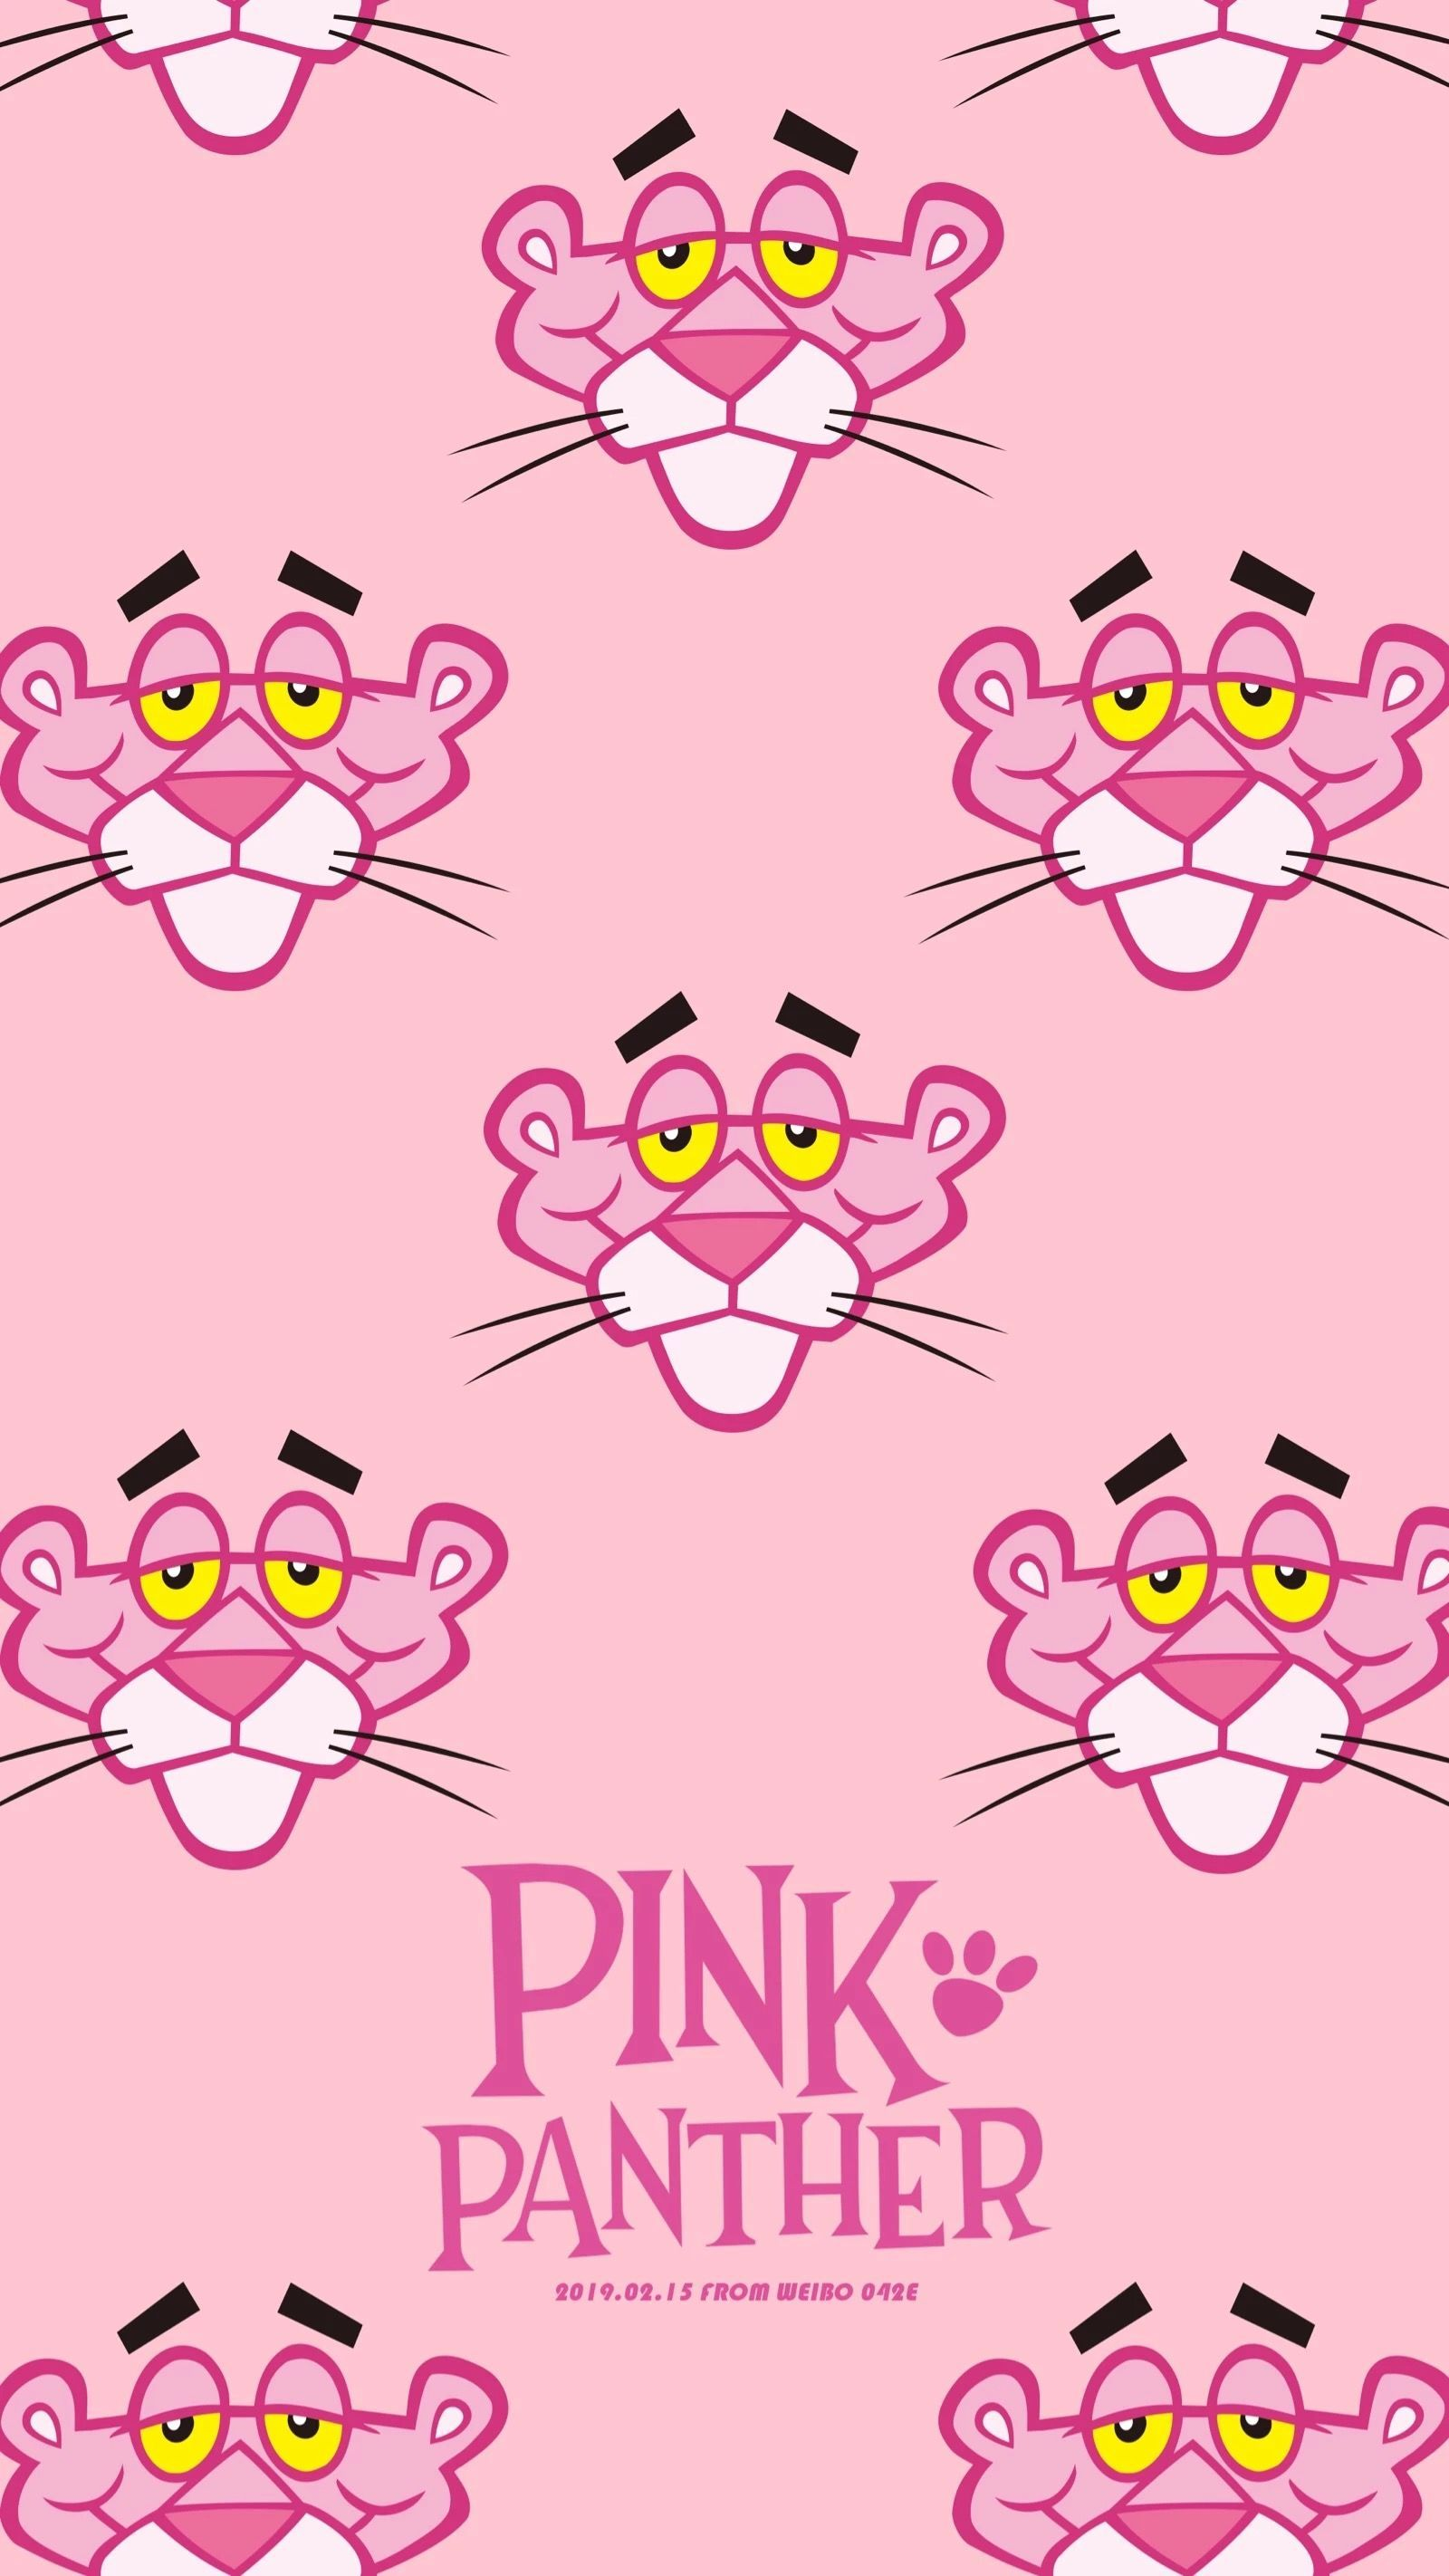 Think Pink Pink Panther Panther Think Pink Panther Cartoon Pink Panthers Pink Panter